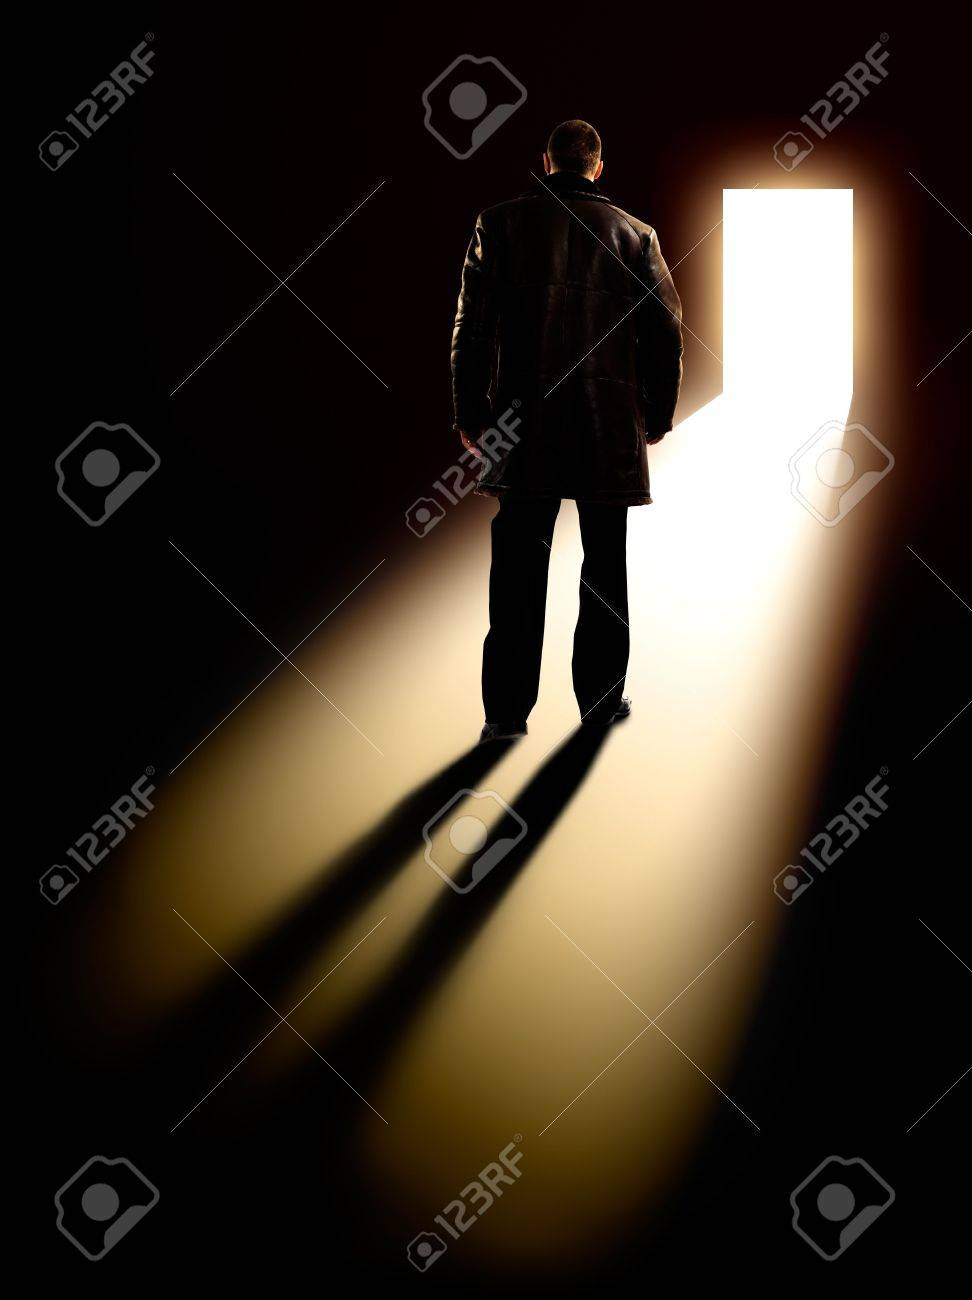 Business Metaphor - businessman walking towards door Stock Photo - 1878485